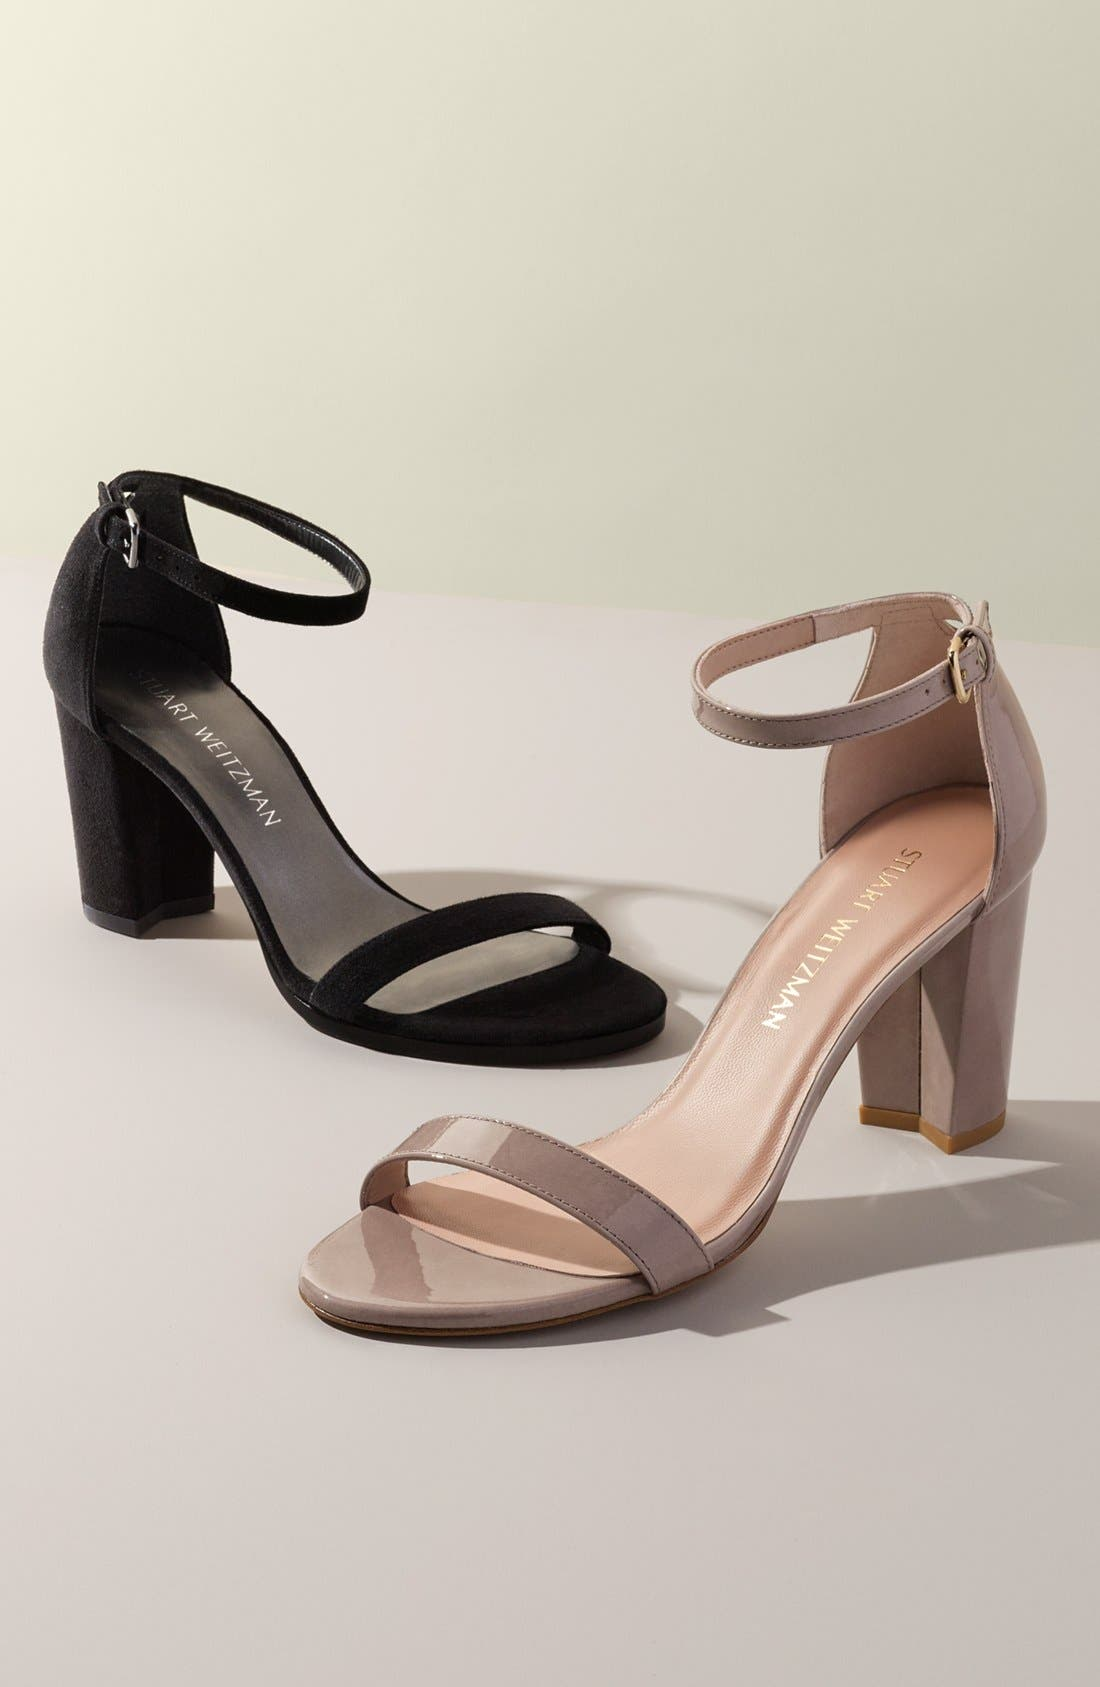 NearlyNude Ankle Strap Sandal,                             Alternate thumbnail 2, color,